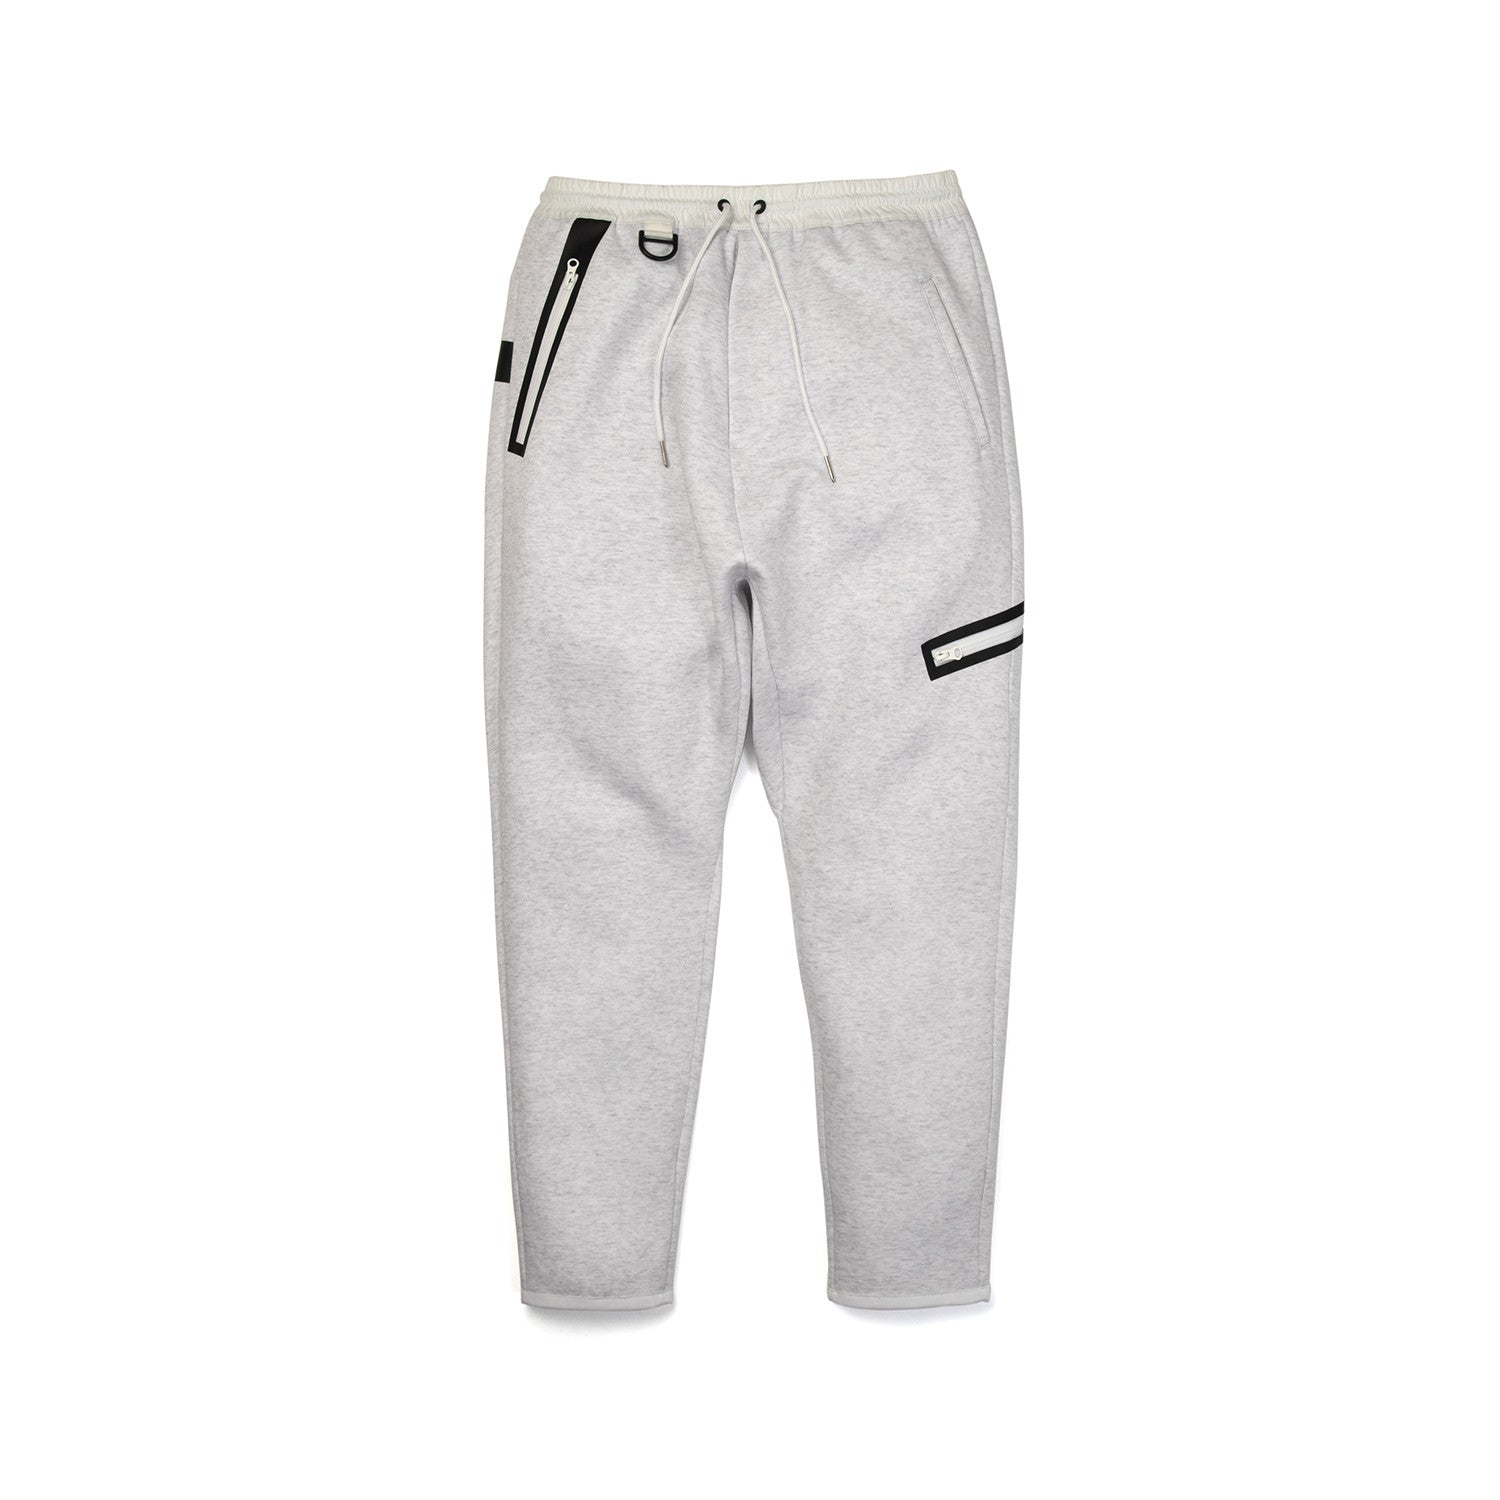 adidas Y-3 Future SP Pants Snomel